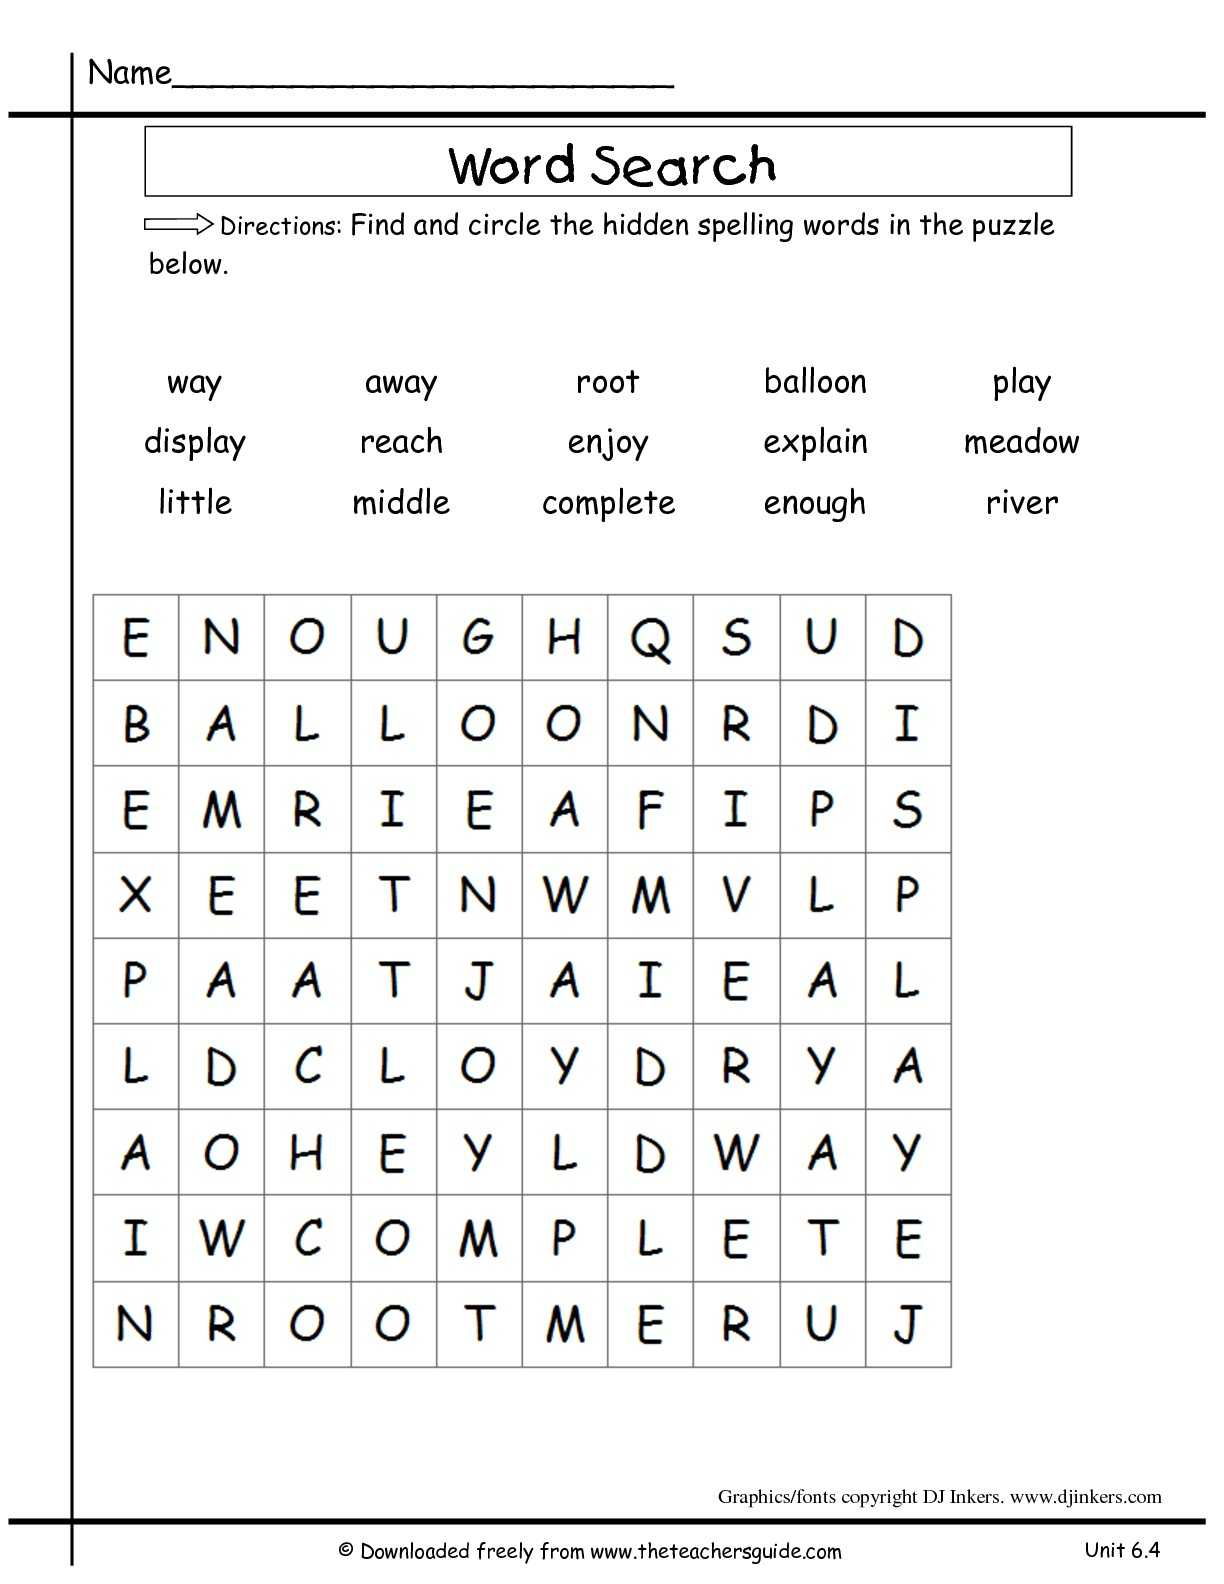 Exponential Growth and Decay Worksheet Answer Key with Second Grade Word Search Worksheets the Best Worksheets Image